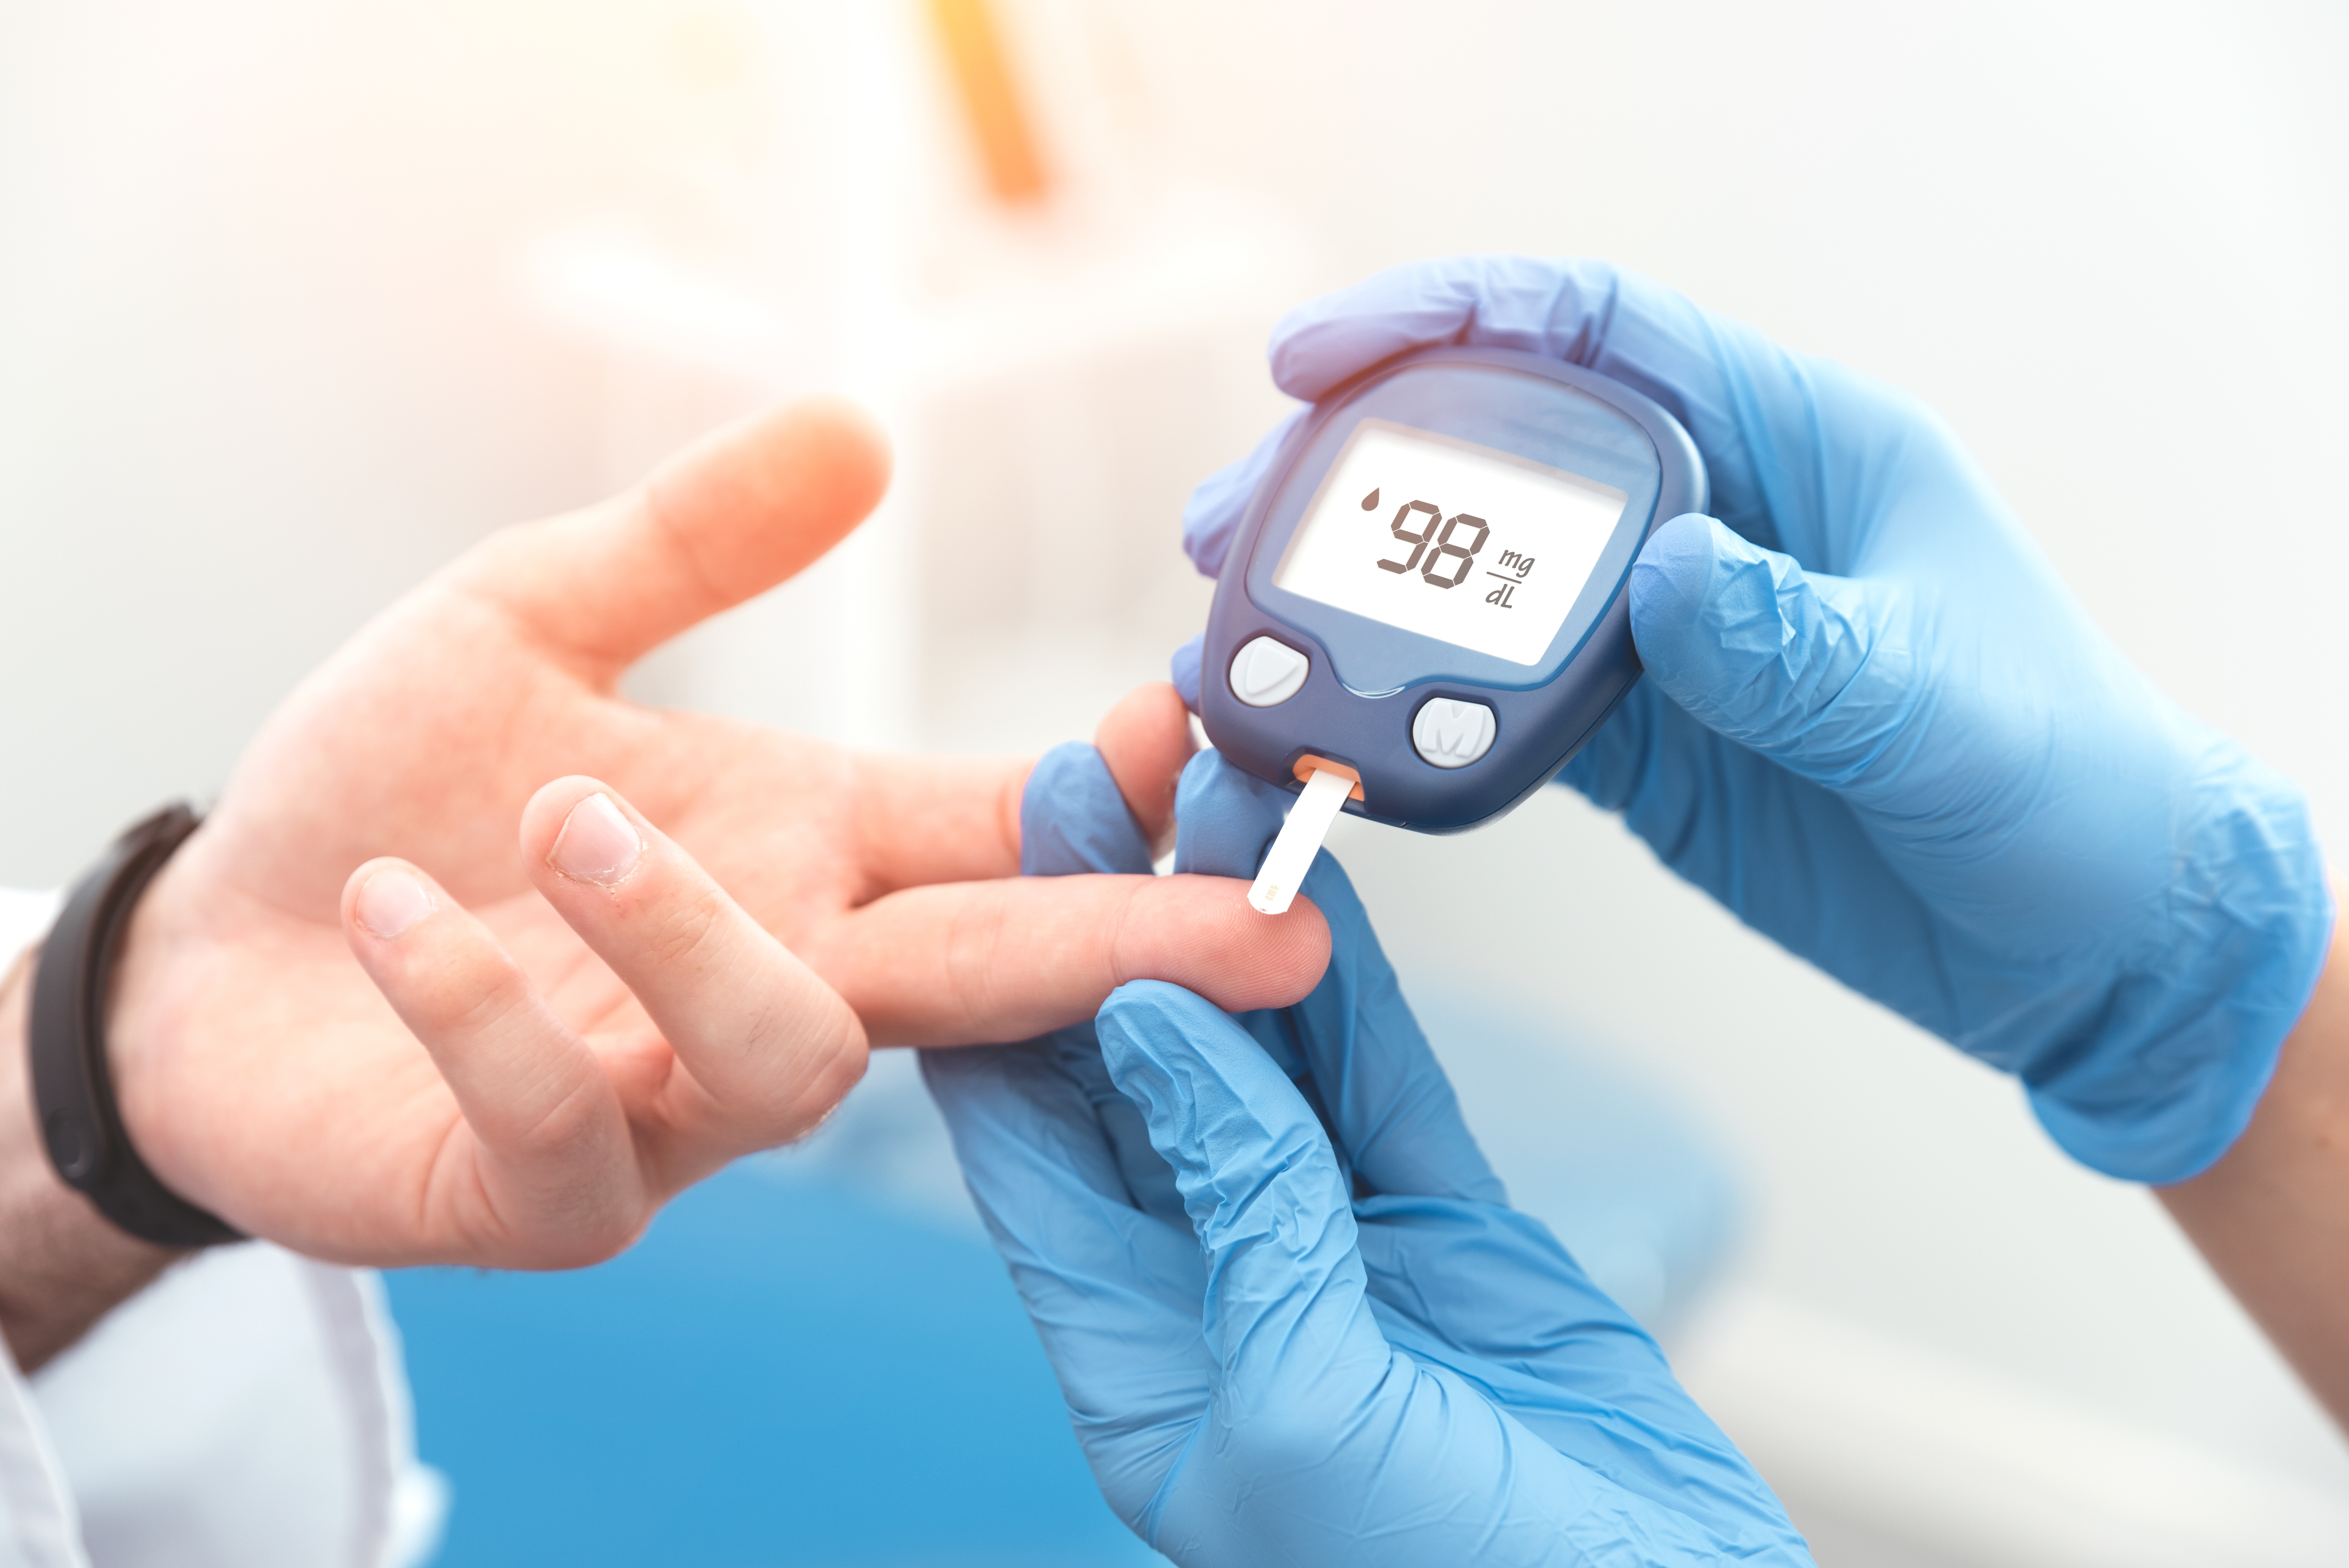 Diabetes Treatment in Louisiana: Signs of High and Low Blood Sugar